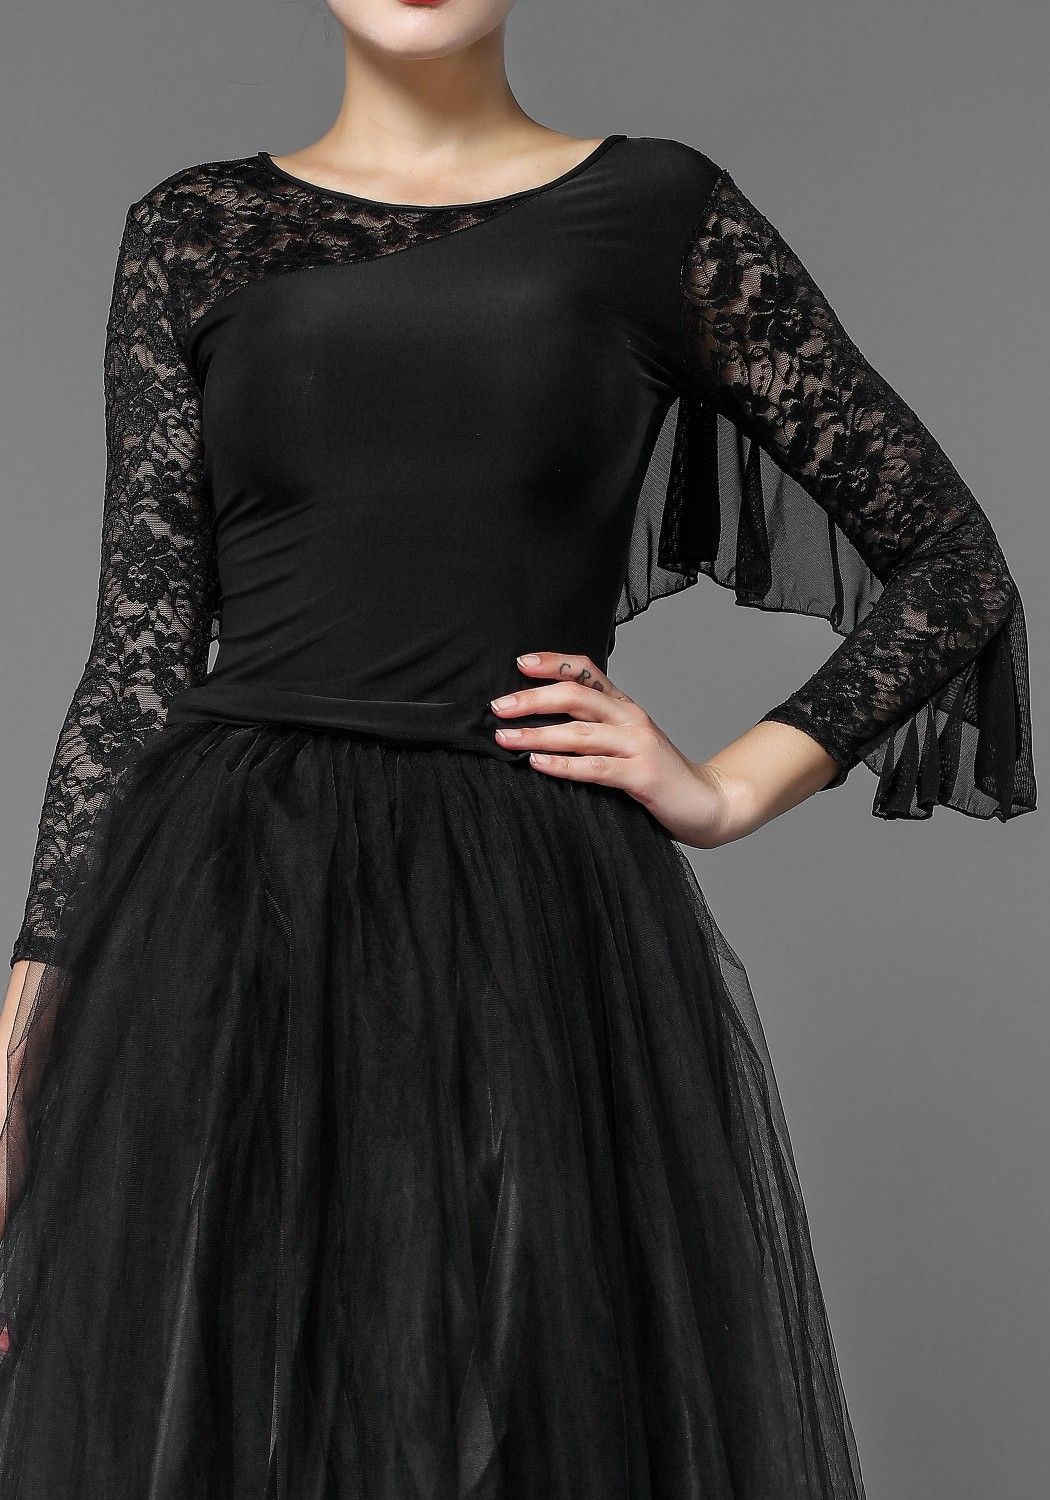 Black Lace and Luxury Crepe Top